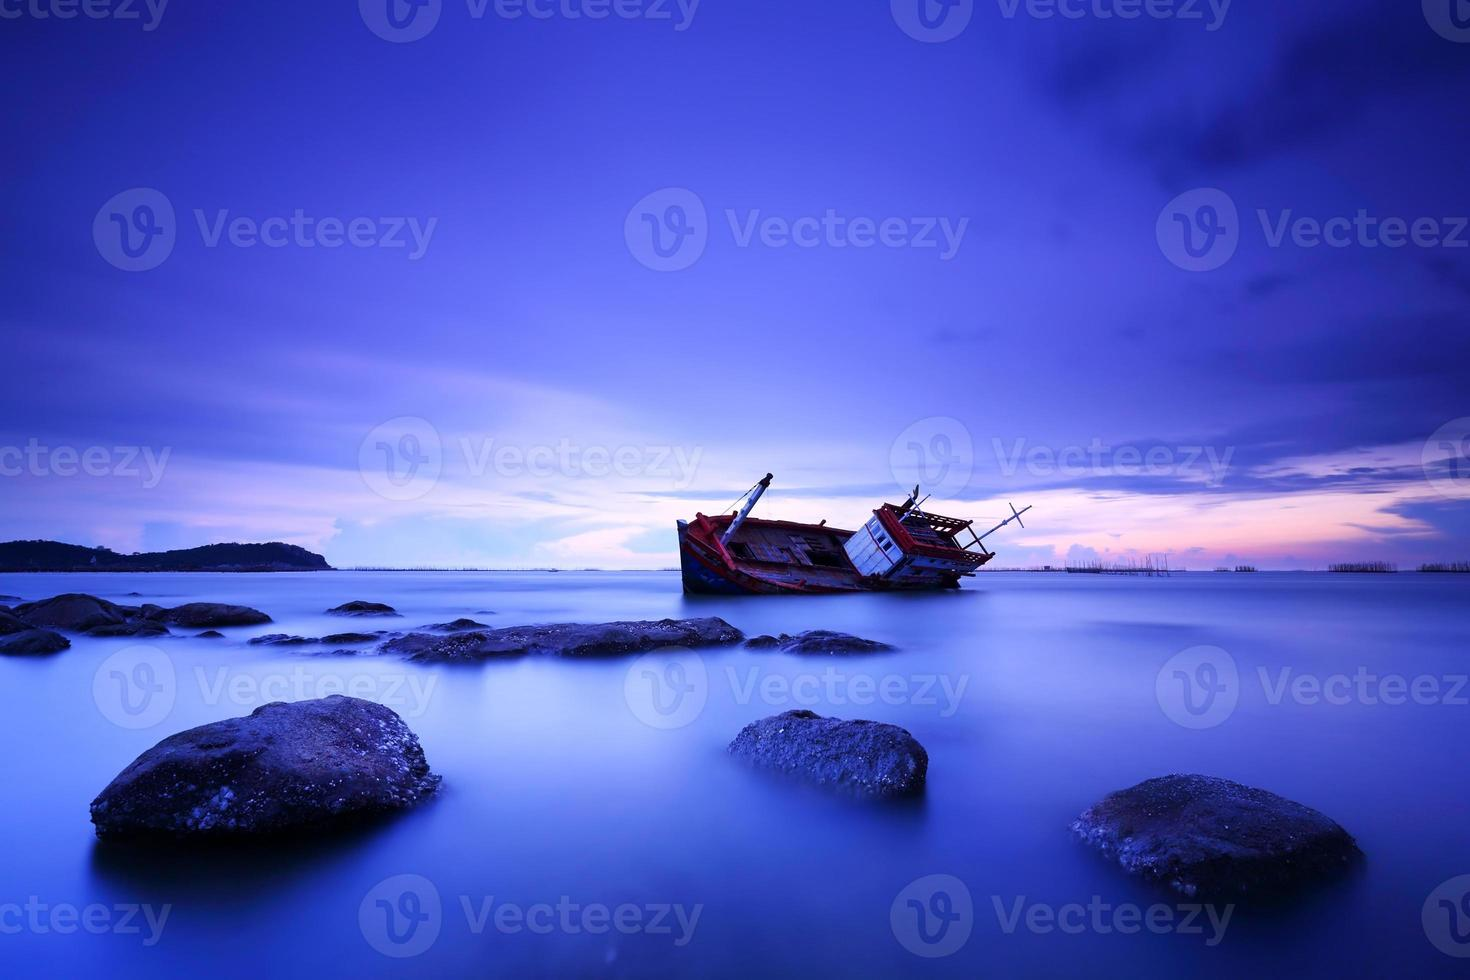 Shipwrecked in sunset photo